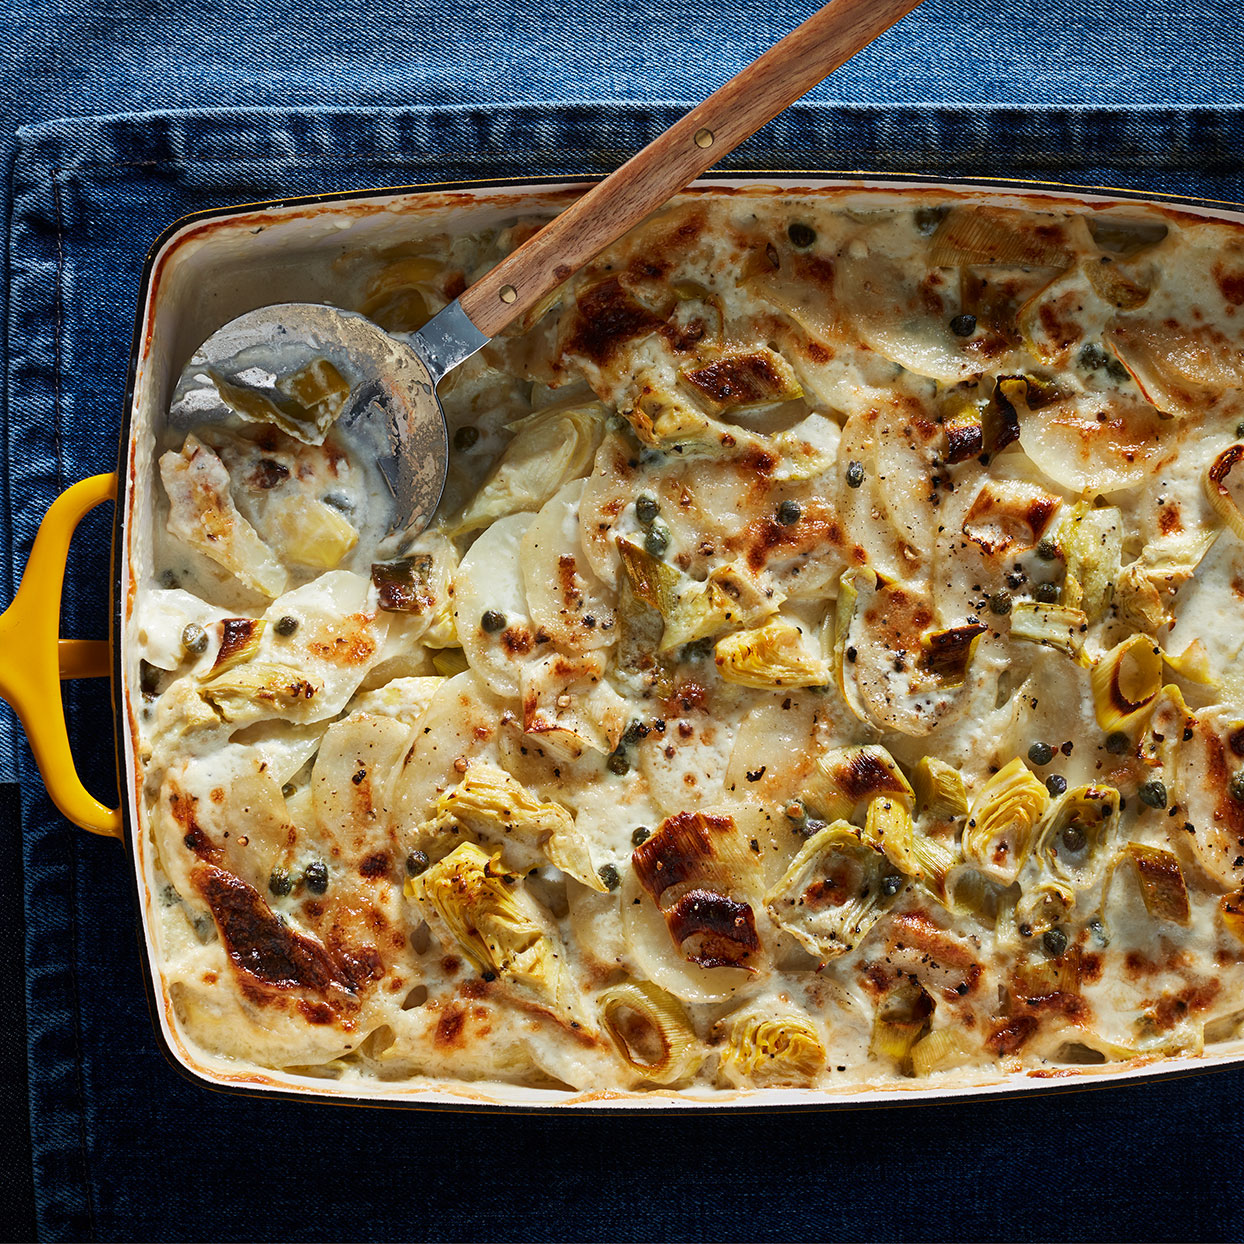 This gratin dish has all of the craveable flavors of artichoke dip in a more sophisticated form. It makes a terrific side with any roasted meats or poultry.